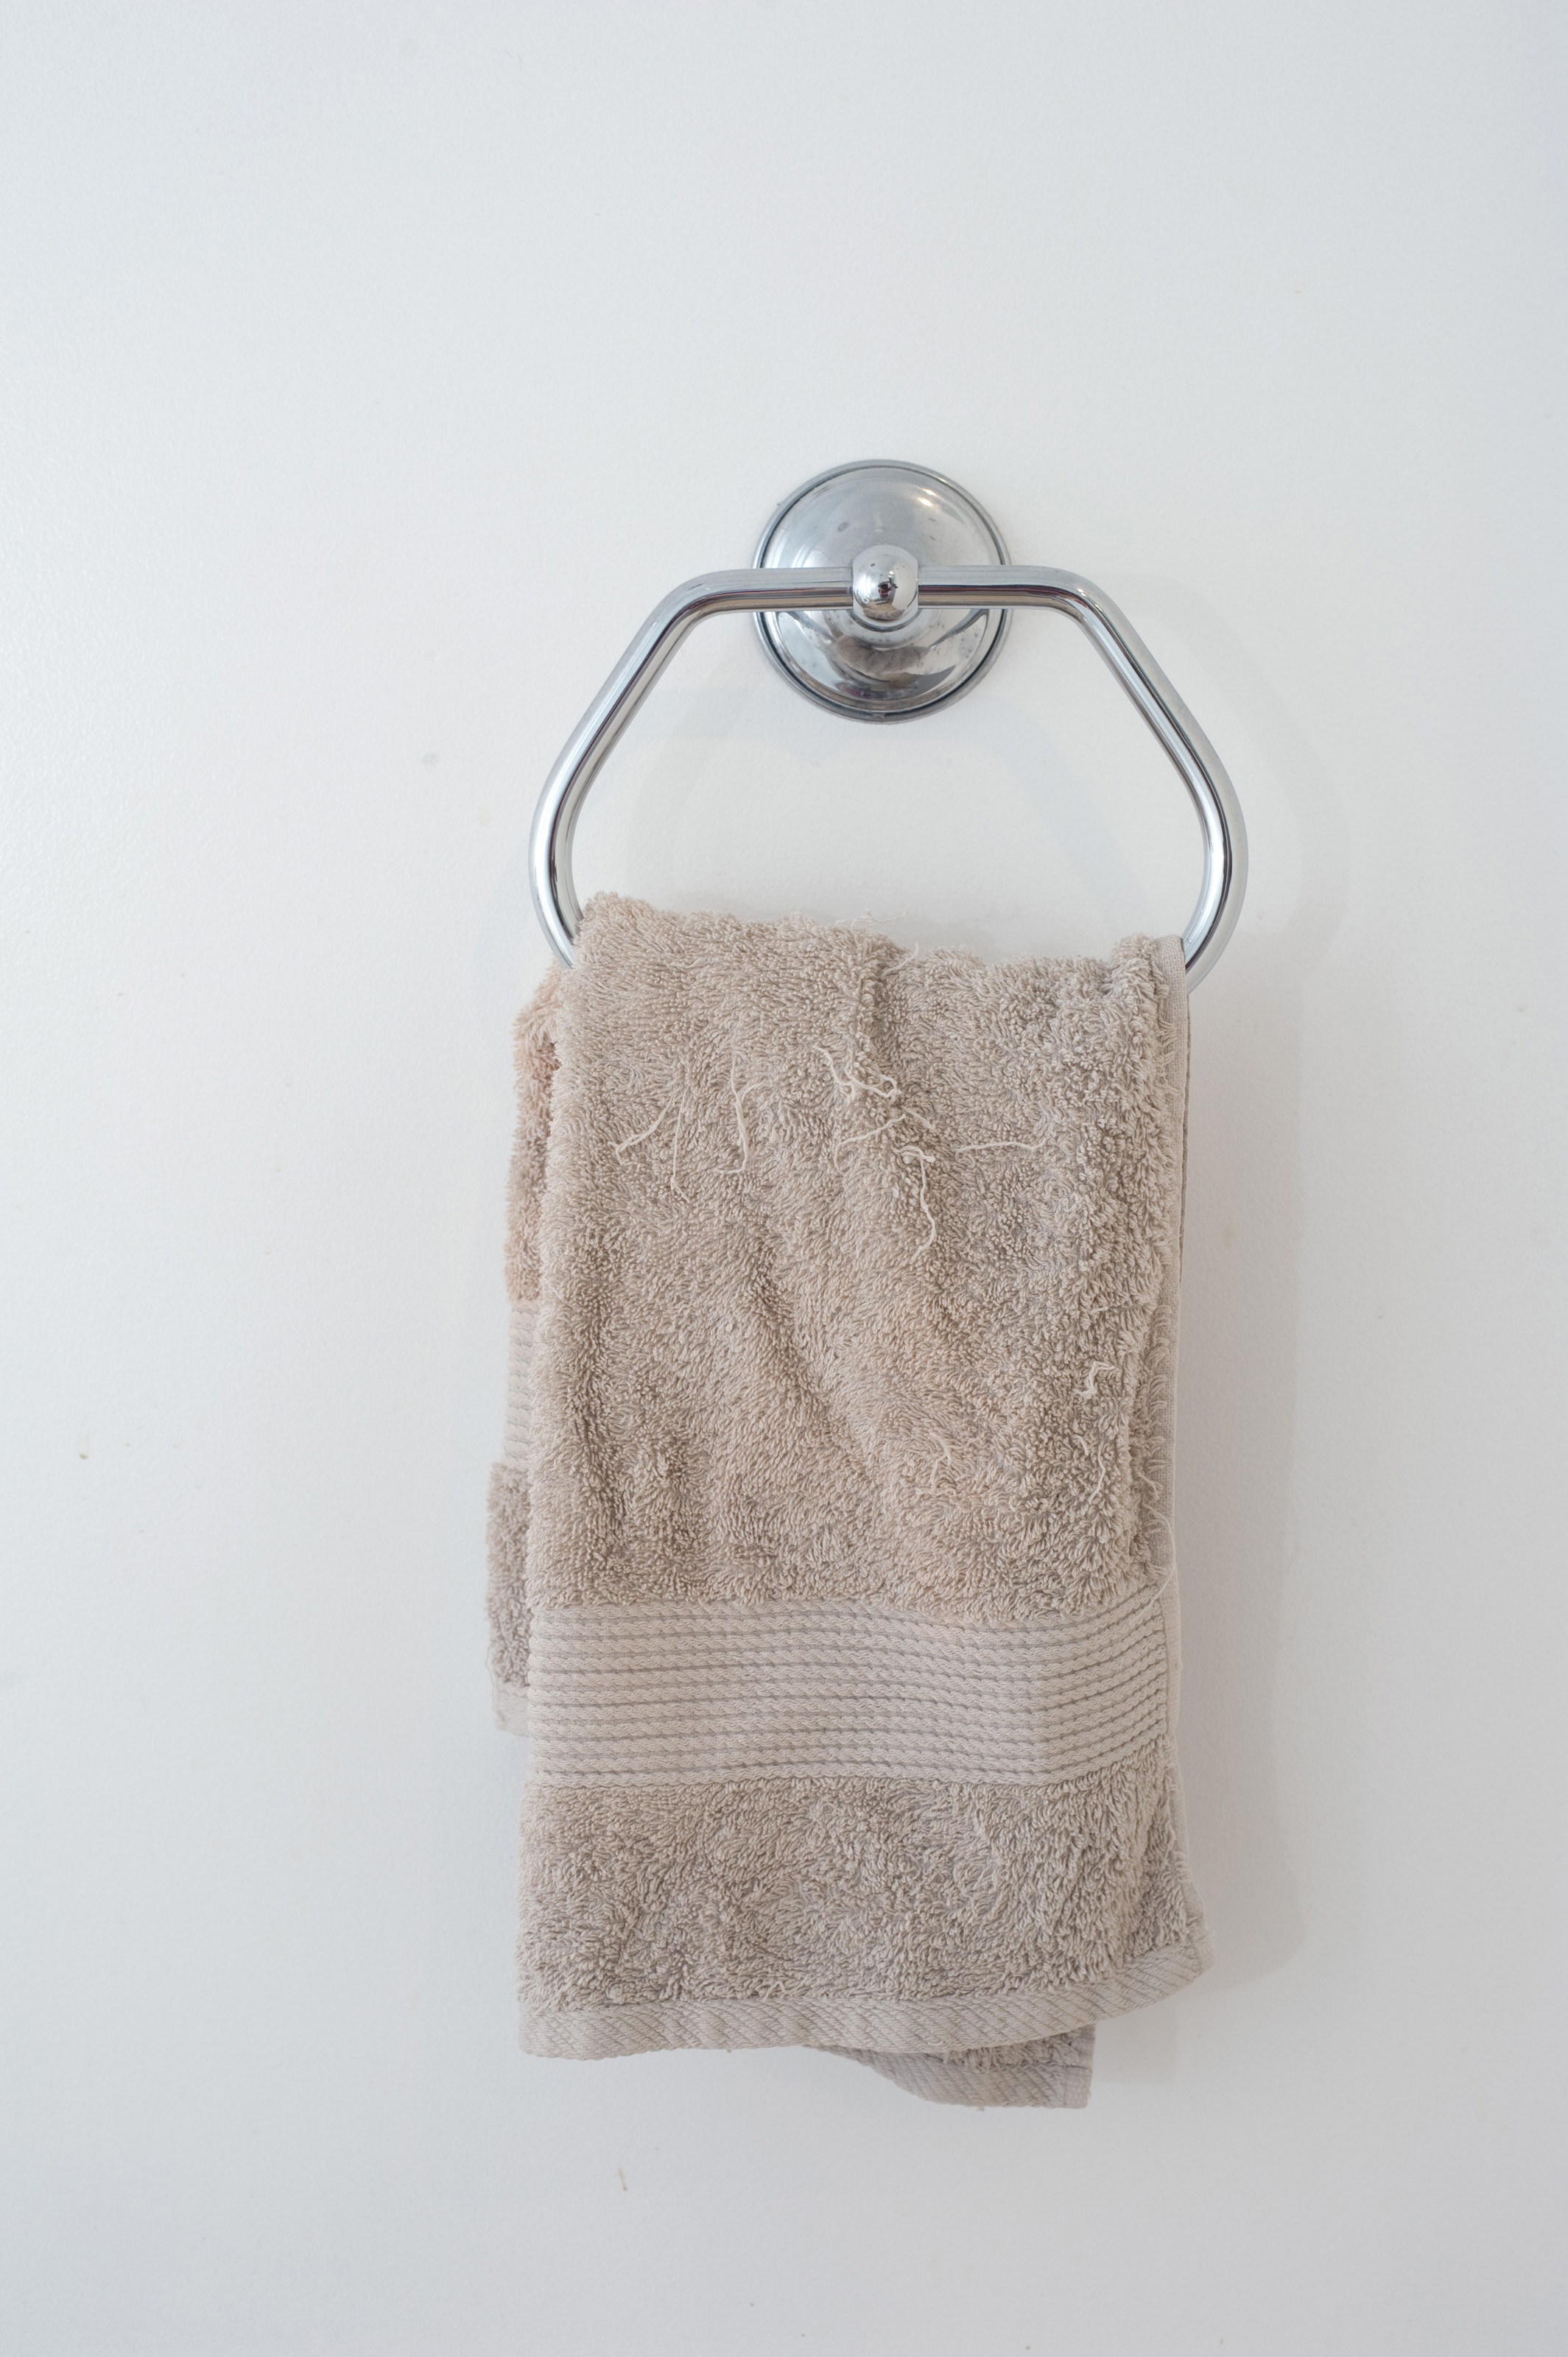 Free stock photo 6923 beige hand towel hanging in a for Bathroom hand towels